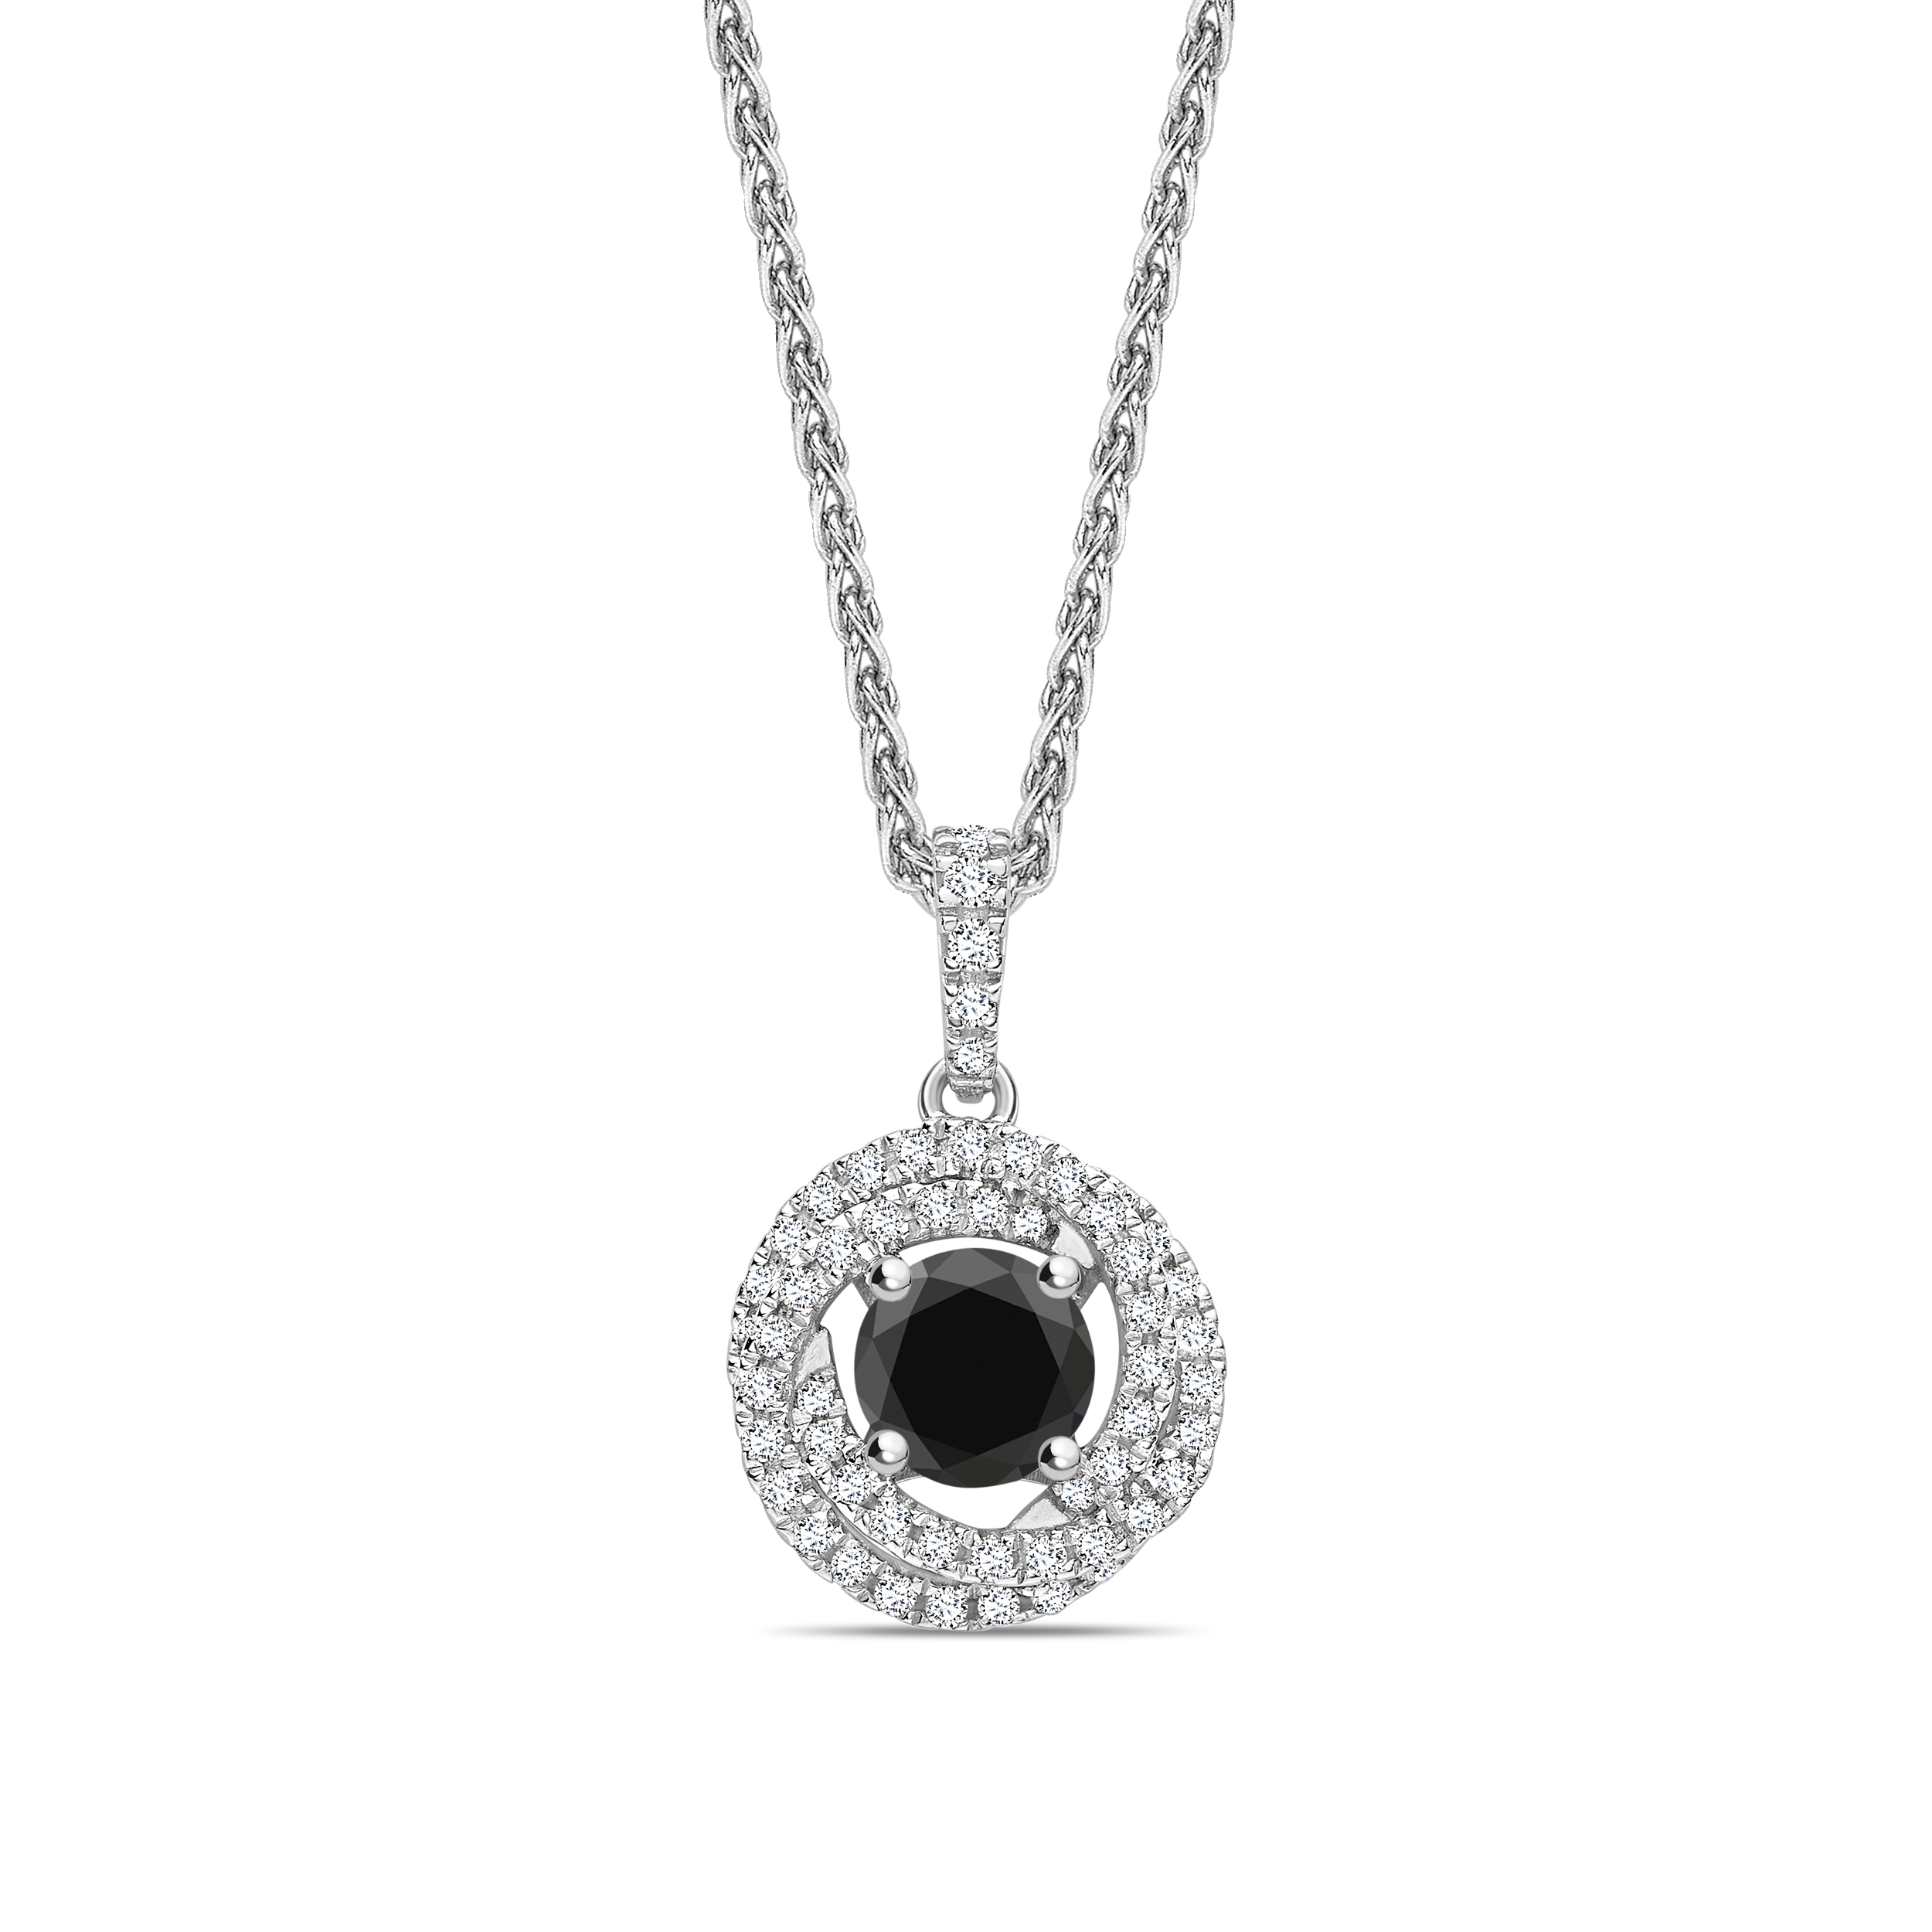 Swirling & Halo Style Black Diamond Solitaire Necklace Pendants